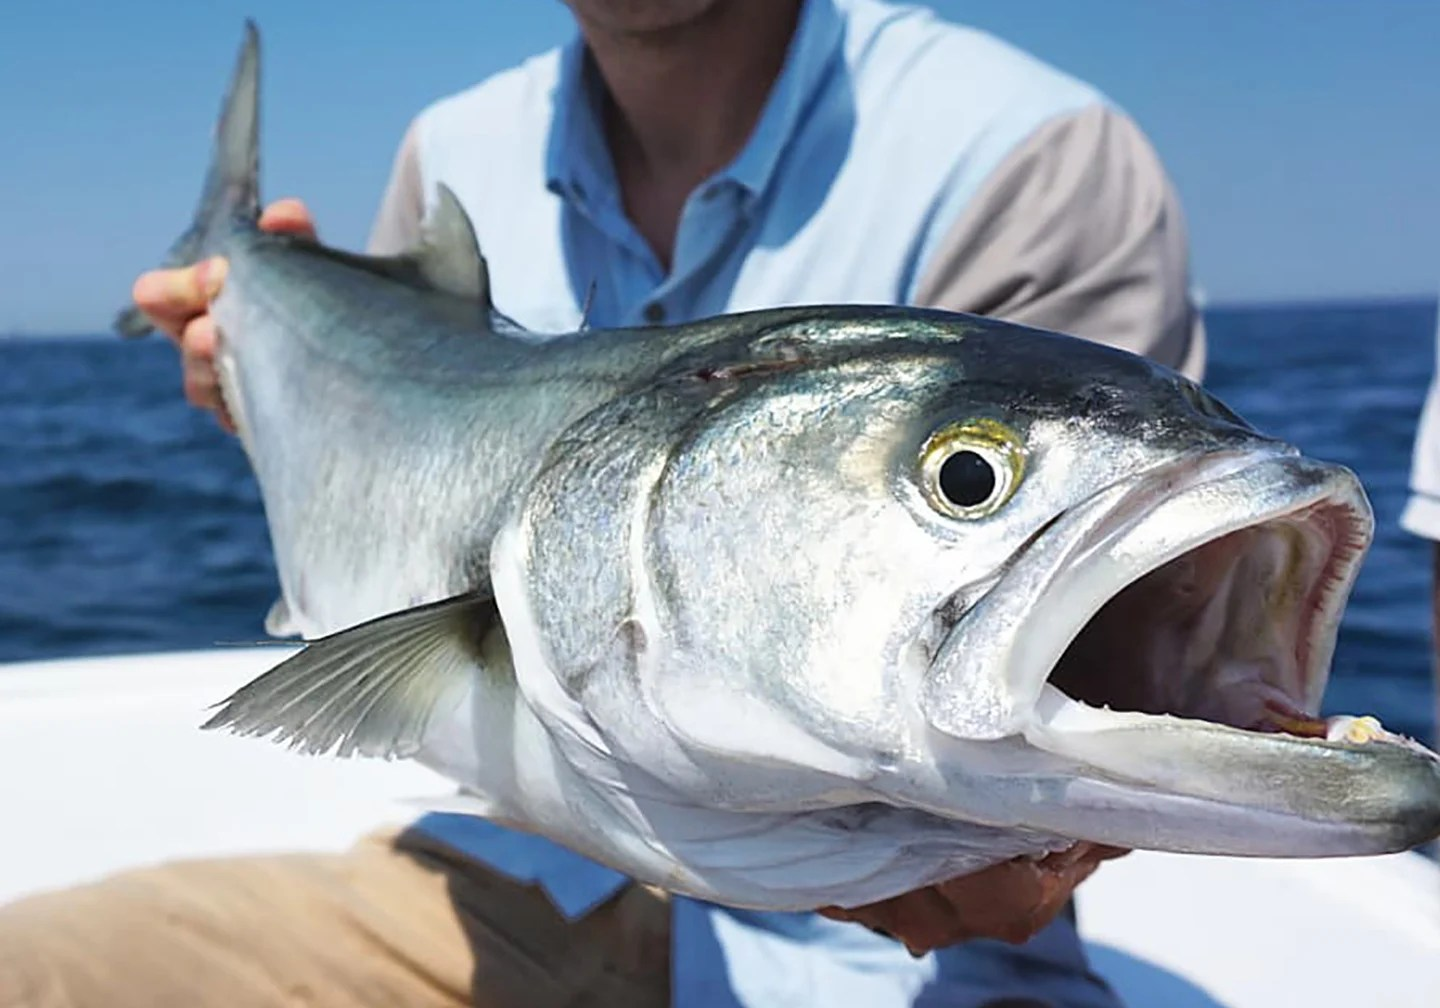 A bluefish being held on a boat with sea, sky, and the boat's white deck behind.